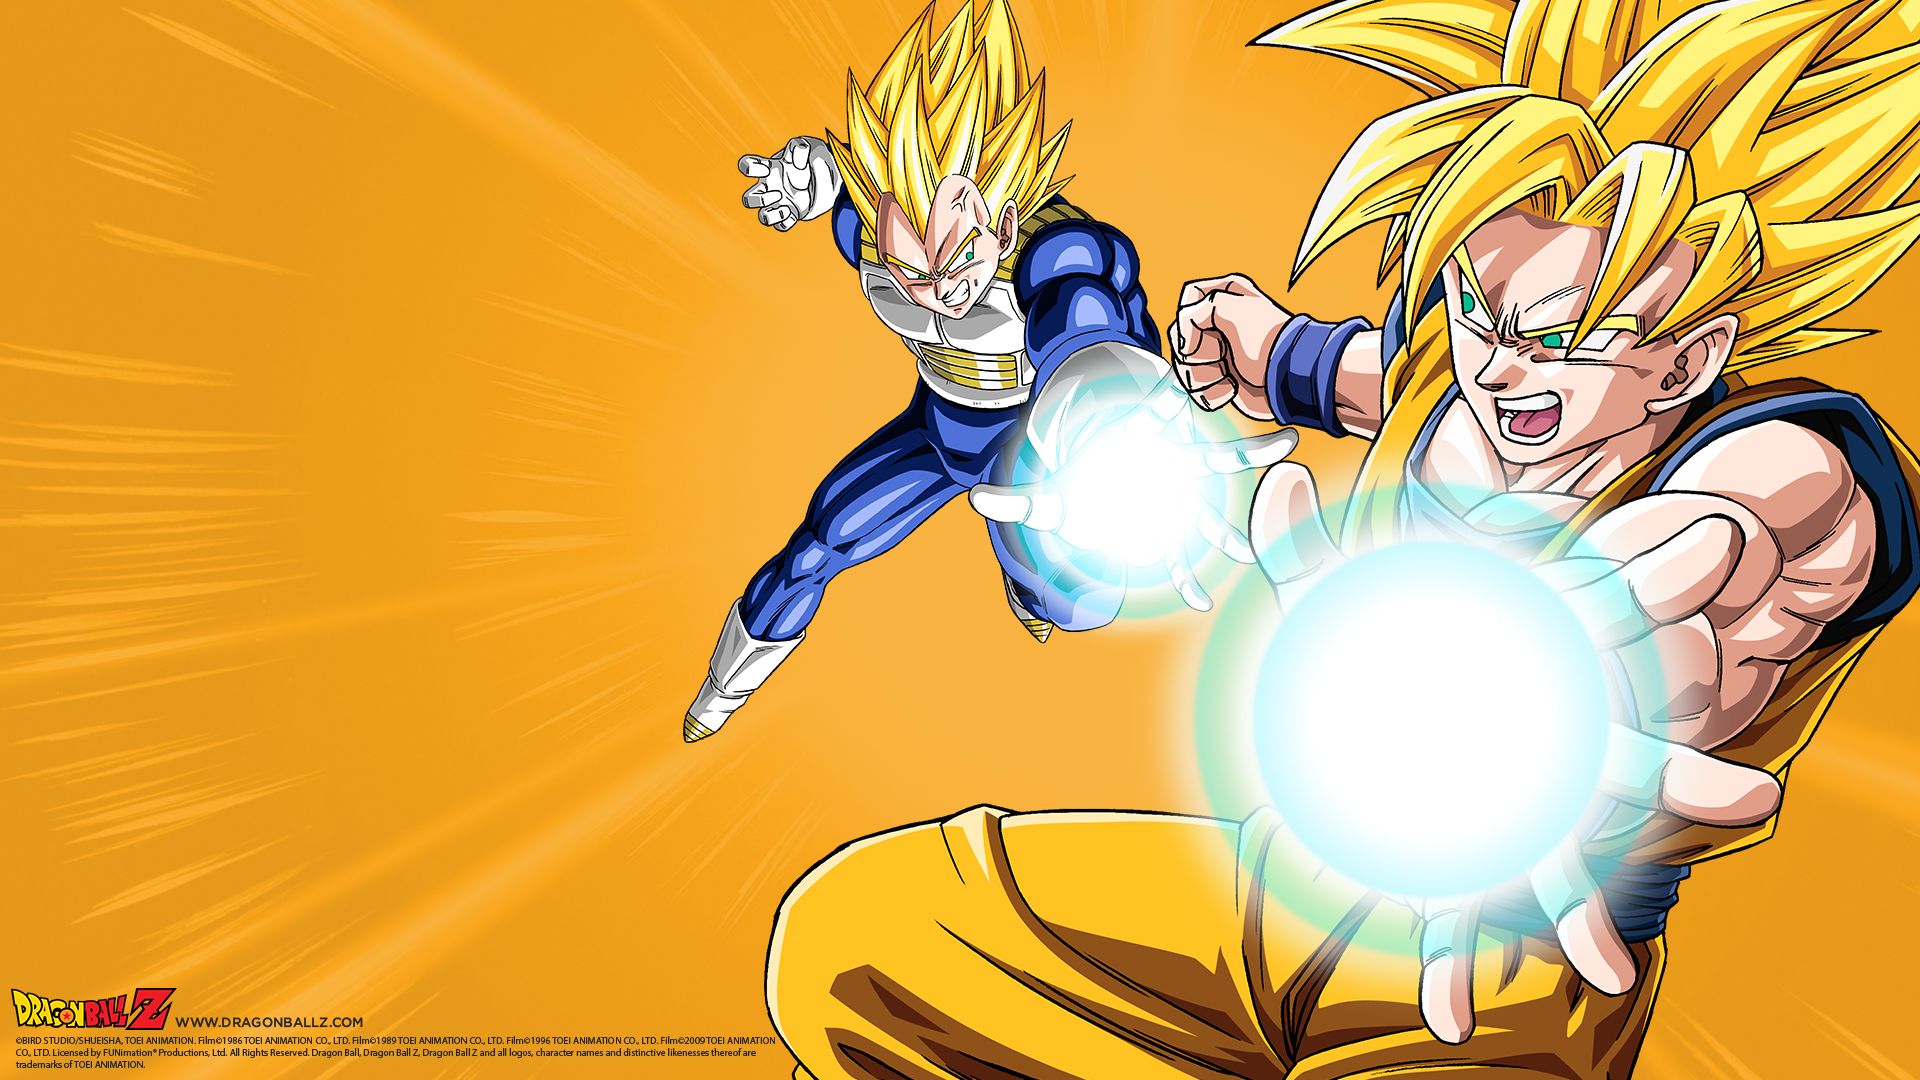 Dragon Ball Z Wallpaper 1920x1080 #6035 Wallpaper ...